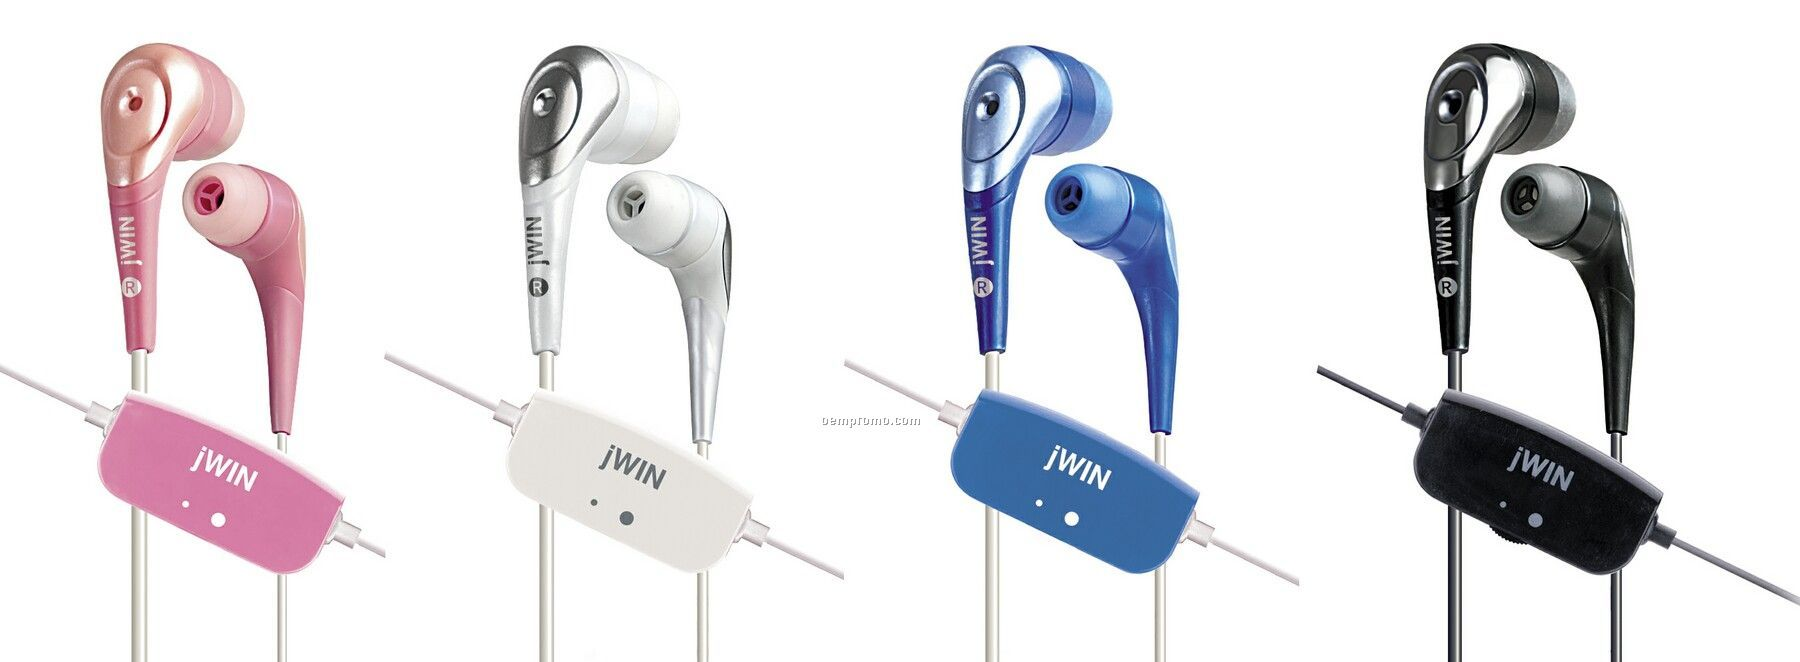 Jwin Stereo In-ear Earphones W/ Vc